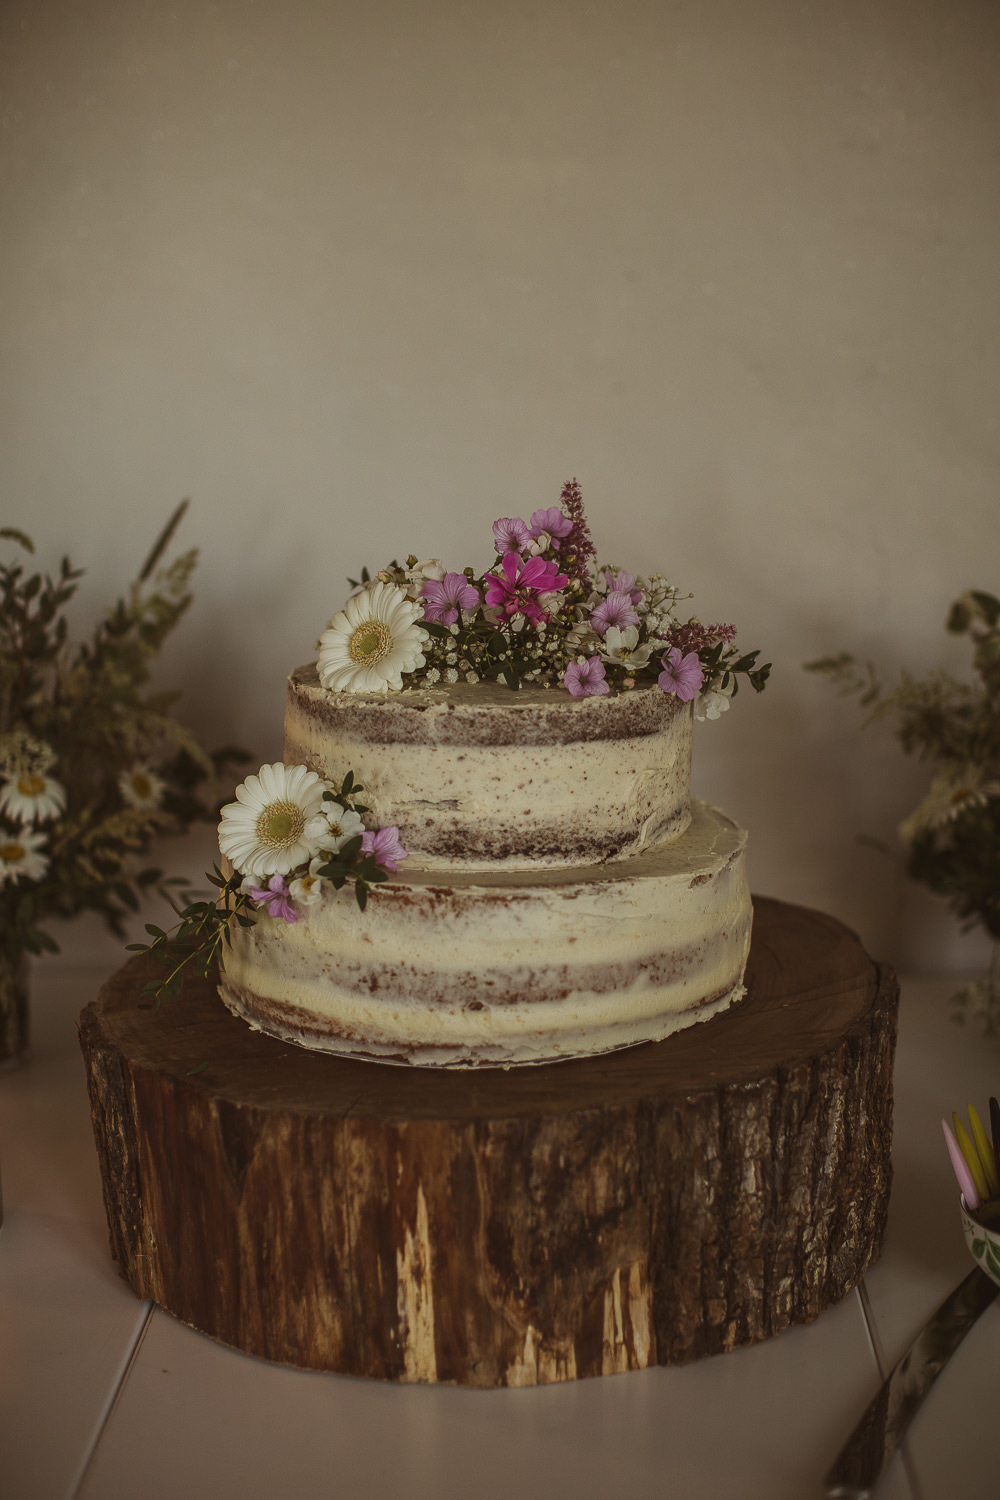 Semi Naked Cake Icing Buttercream Flowers Log Stand Escape To The Chateau Wedding The Springles